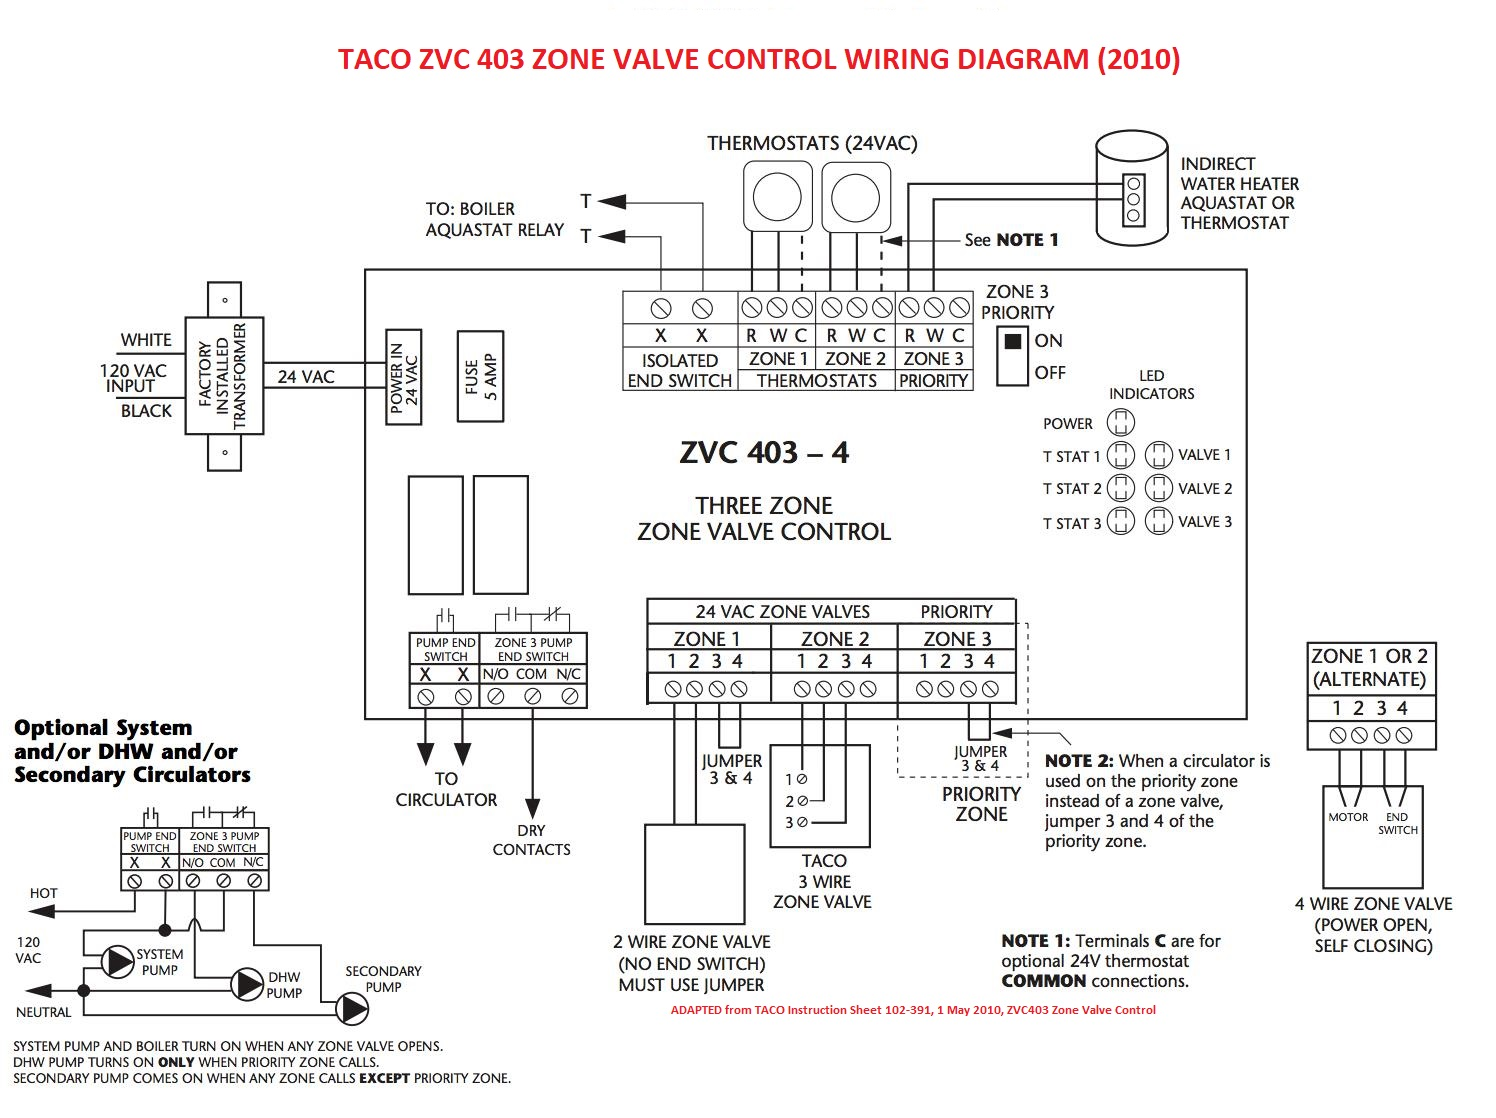 50 Taco Relay Wiring - Data Wiring Diagram Update Furnace Wiring Diagram on furnace controls diagram, furnace schematic, furnace heater diagram, furnace fan belt, furnace maintenance diagram, furnace hvac diagram, furnace ductwork diagram, furnace plumbing diagram, furnace transformer diagram, furnace thermostat diagram, furnace filter diagram, gas furnace diagram, furnace switch, furnace relay diagram, furnace motor diagram, furnace repair, furnace wiring symbols, furnace fan diagram,